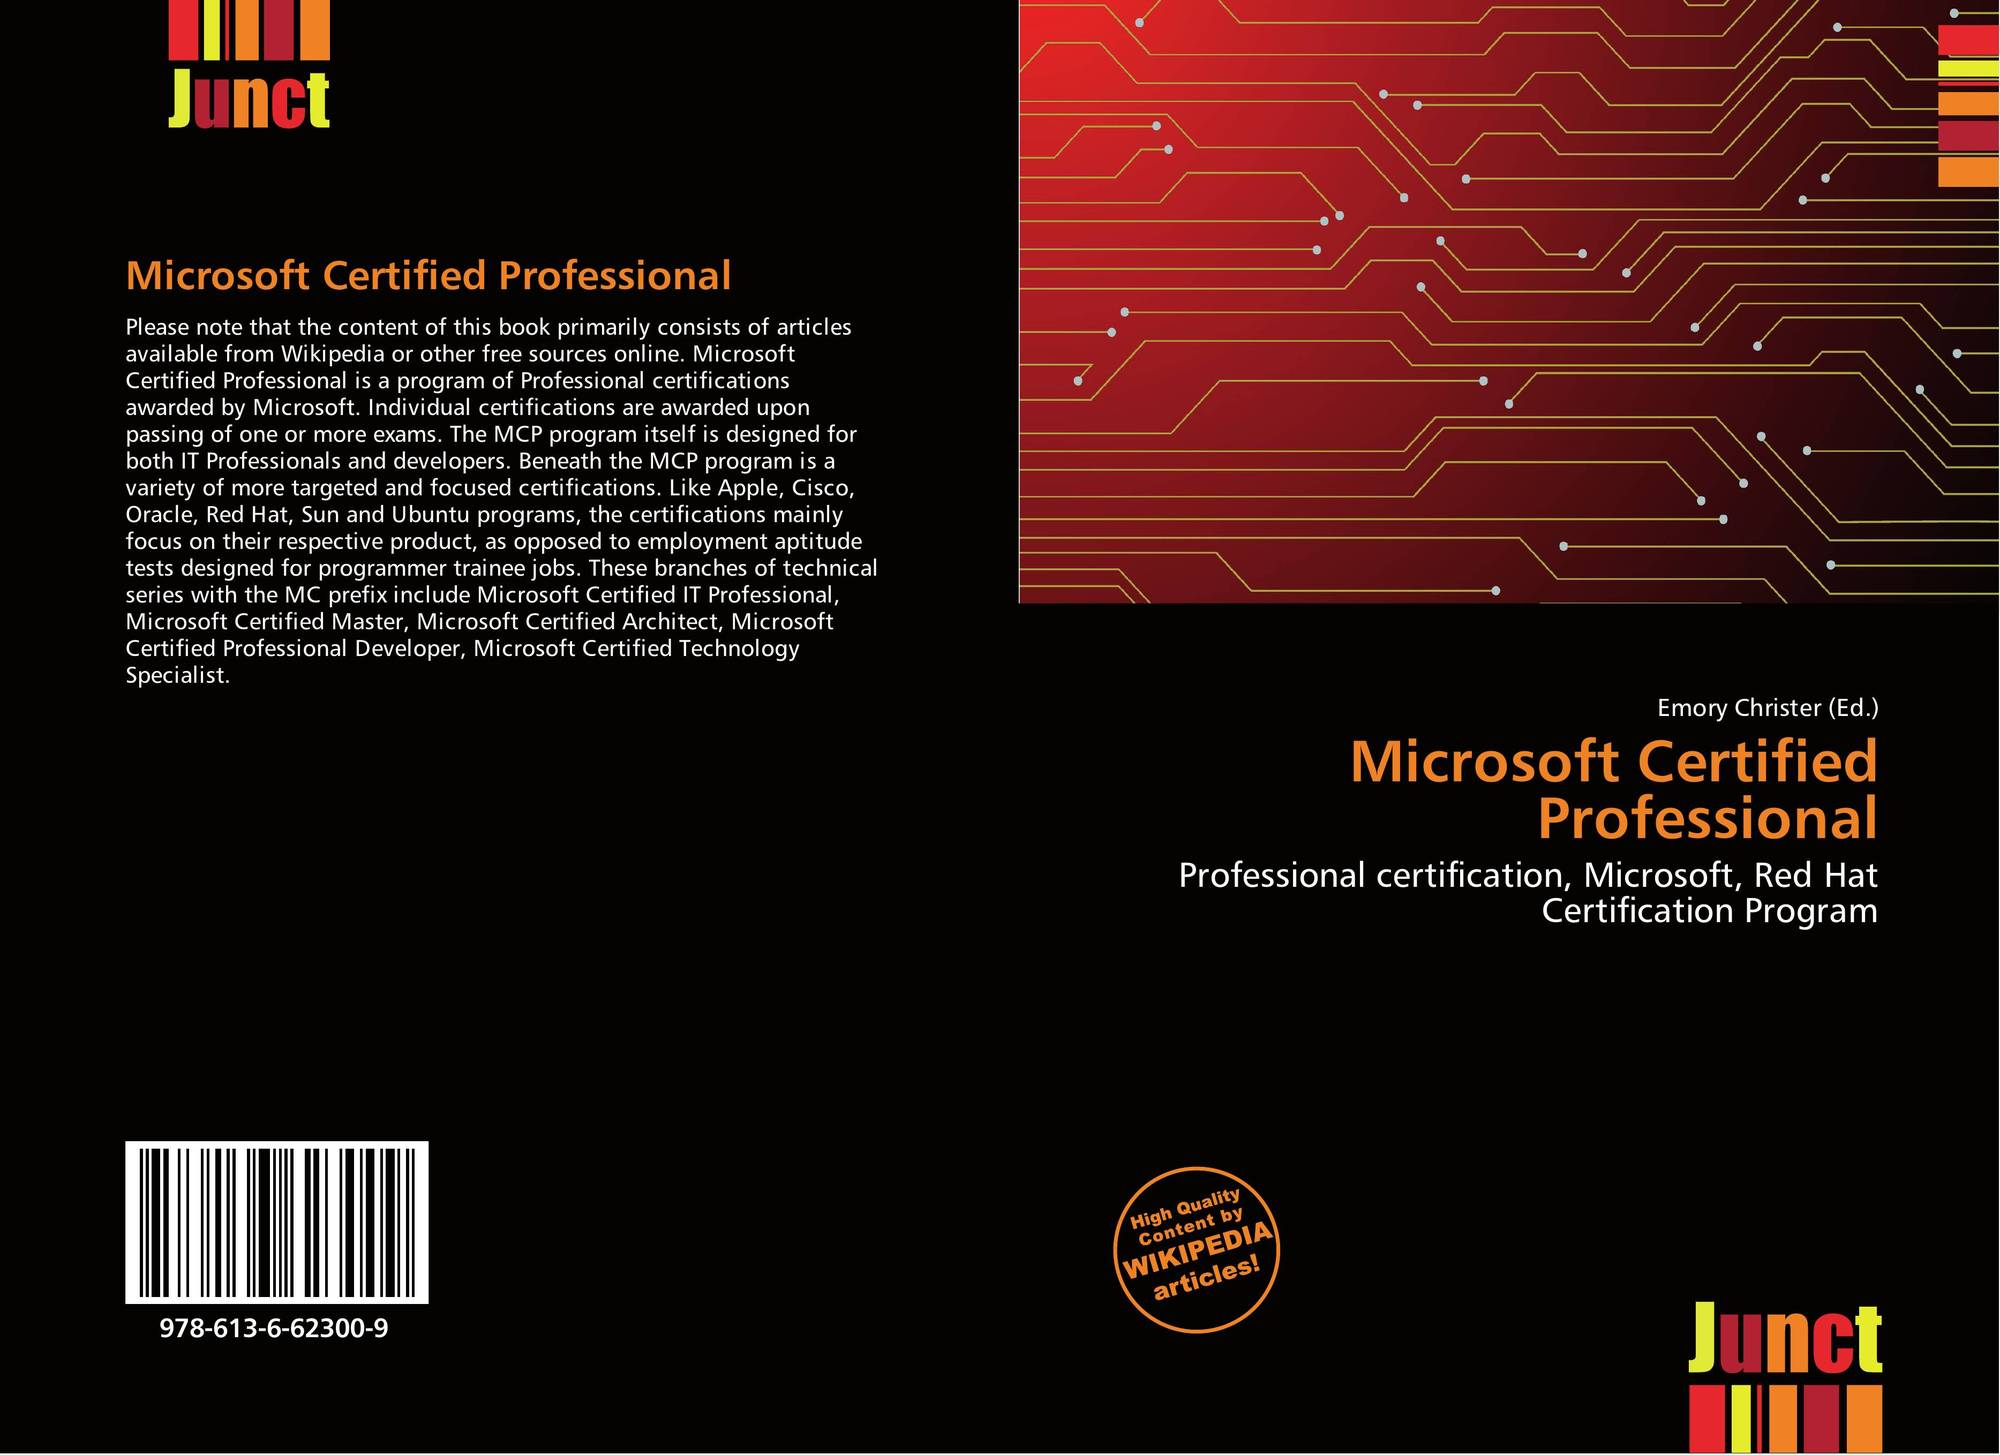 Microsoft Certified Professional 978 613 6 62300 9 6136623005